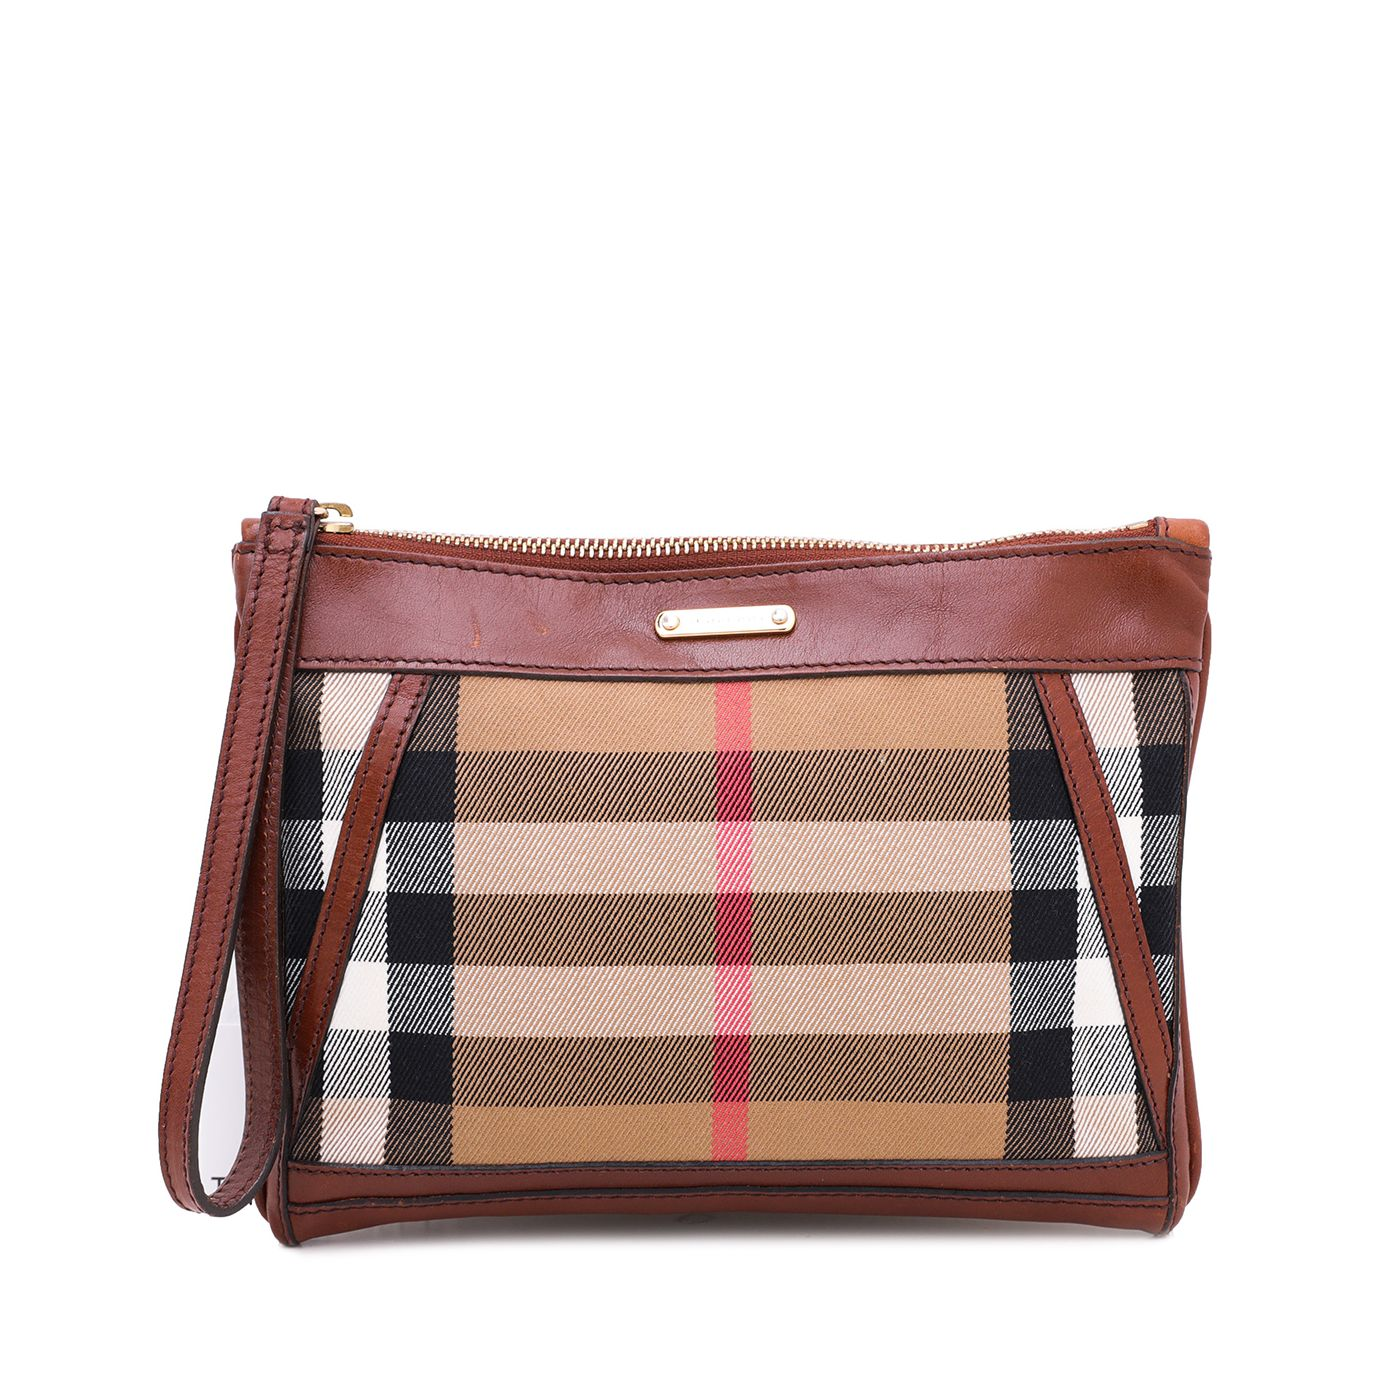 Burberry Brown Nova Check Zip Wrist Pochette